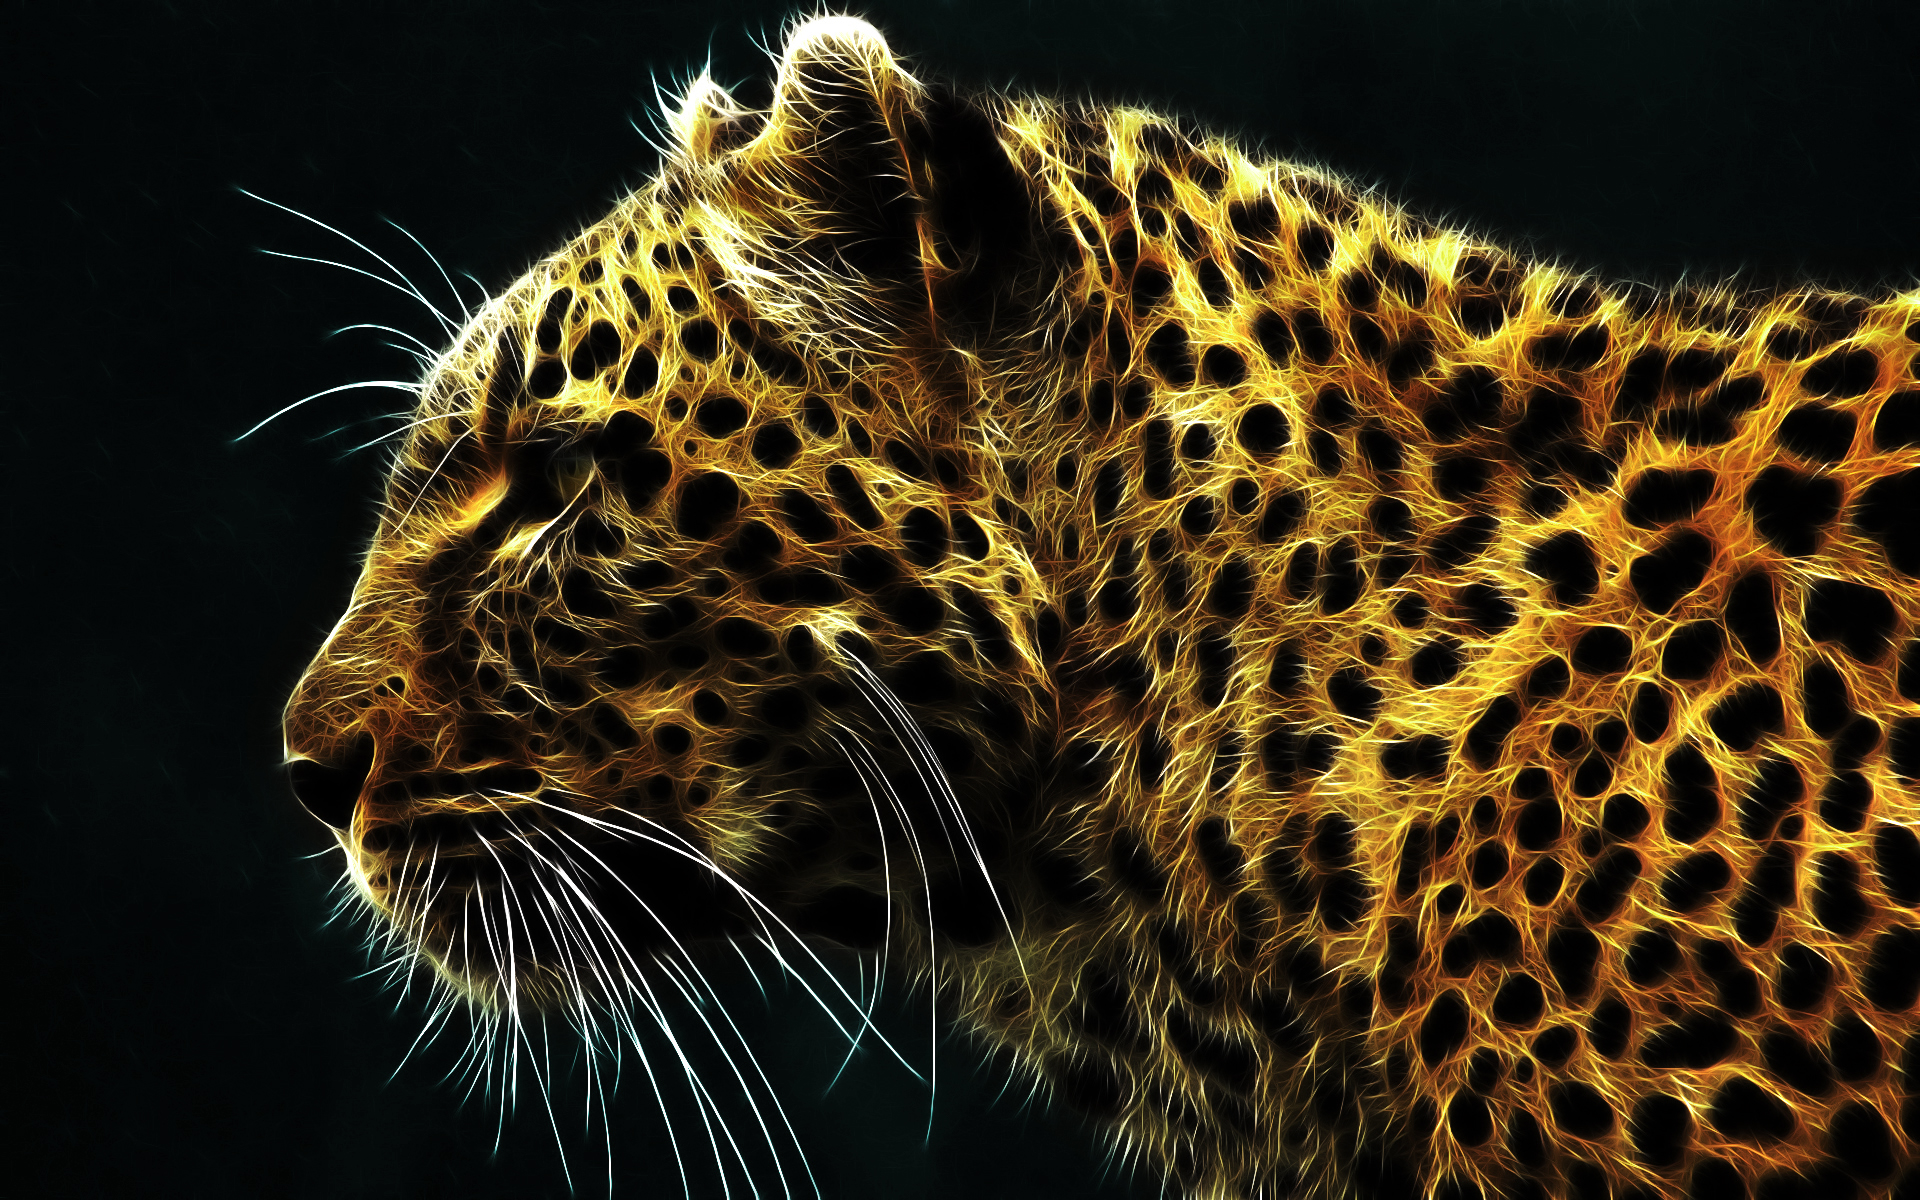 Digital Leopard 295.66 Kb